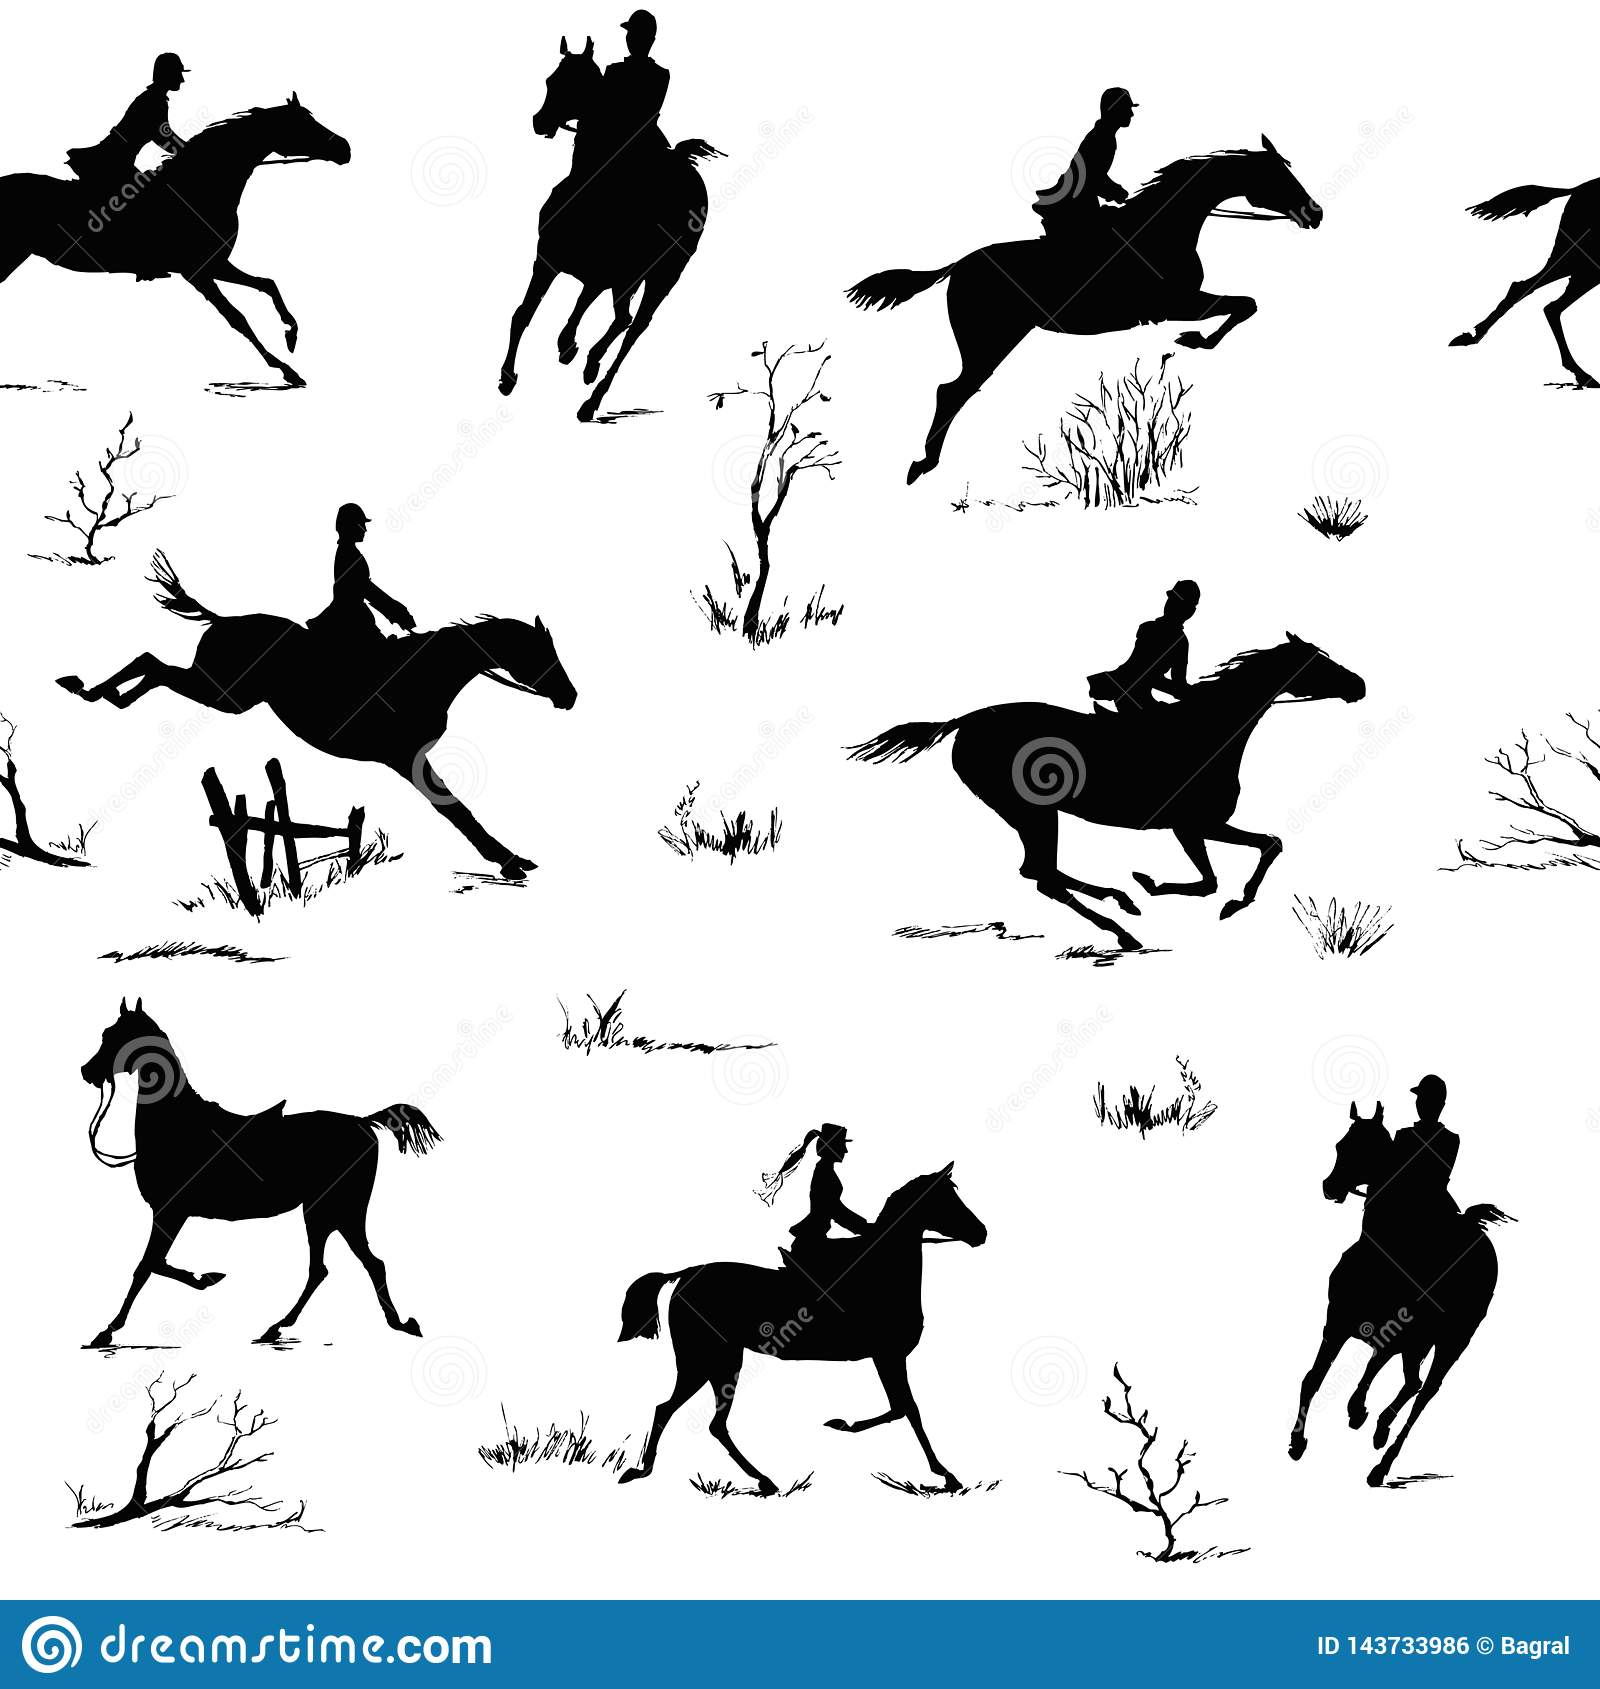 Equestrian Horse Riding Style Silhouette Seamless Pattern Black And White English Fox Hunting Style Stock Vector Illustration Of Rider Galloping 143733986